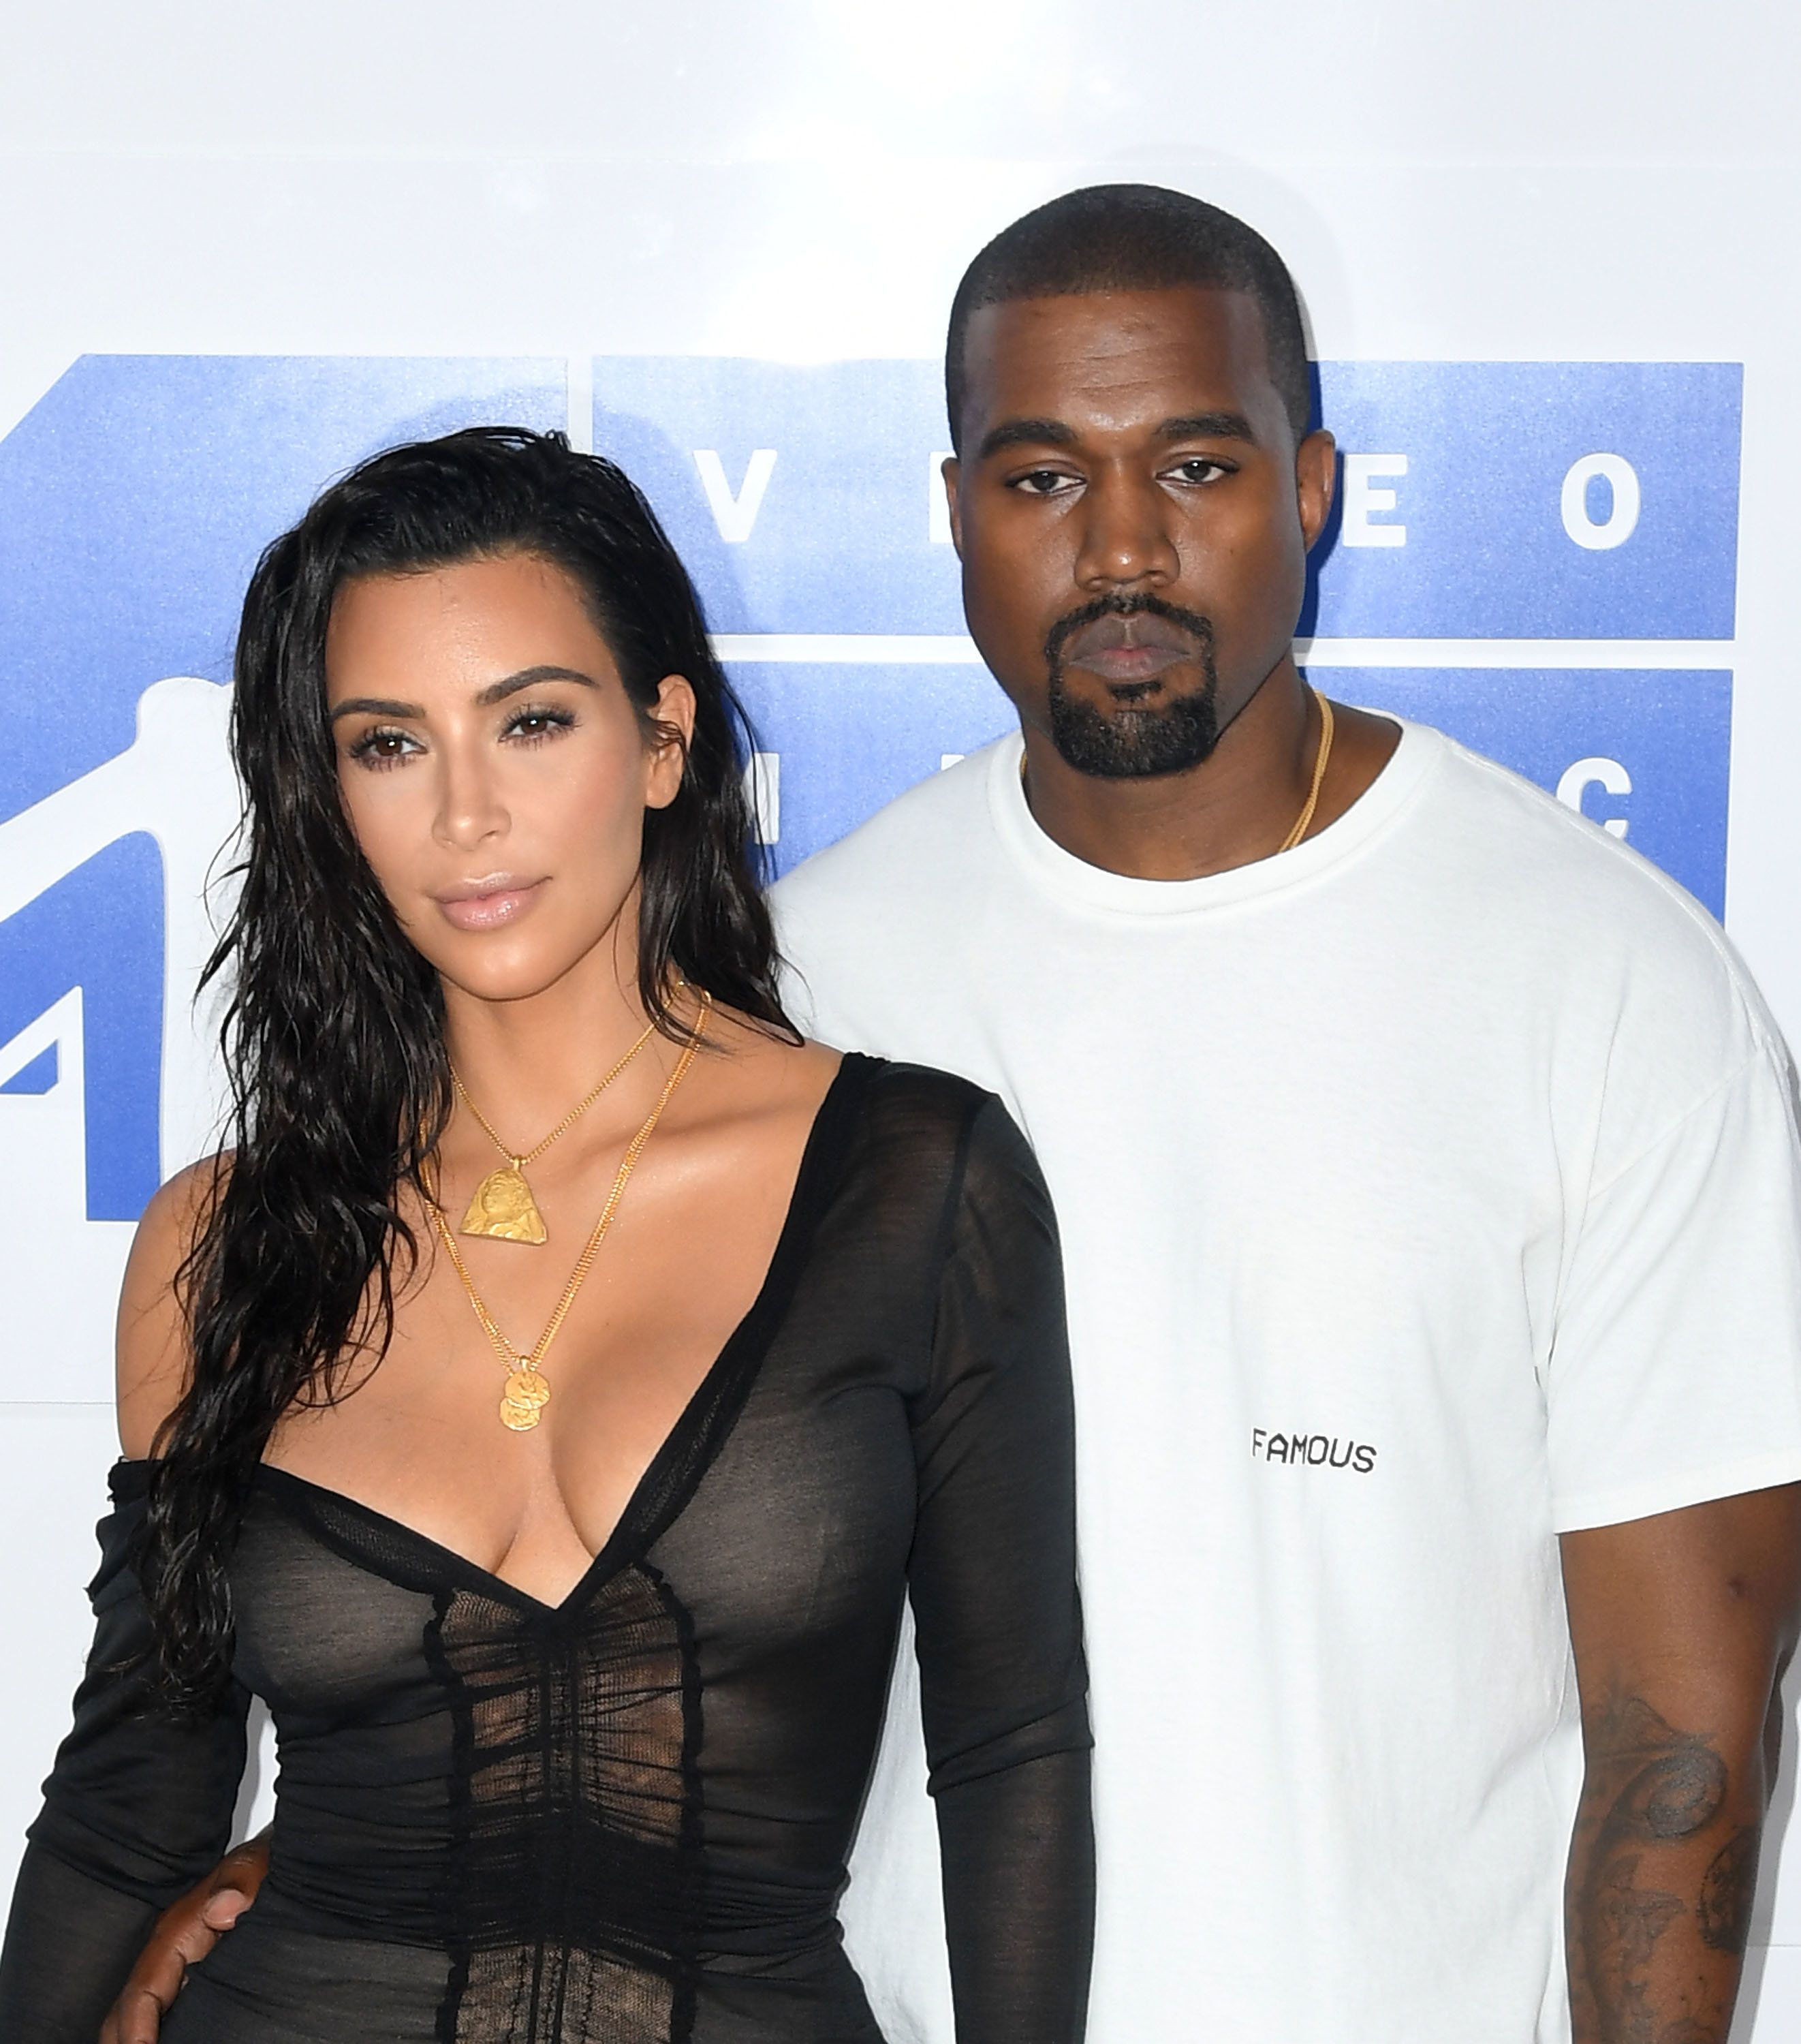 NEW YORK, NY - AUGUST 28:  Kanye West (L) and Kim Kardashian attend the 2016 MTV Video Music Awards at Madison Square Garden on August 28, 2016 in New York City.  (Photo by C Flanigan/FilmMagic)